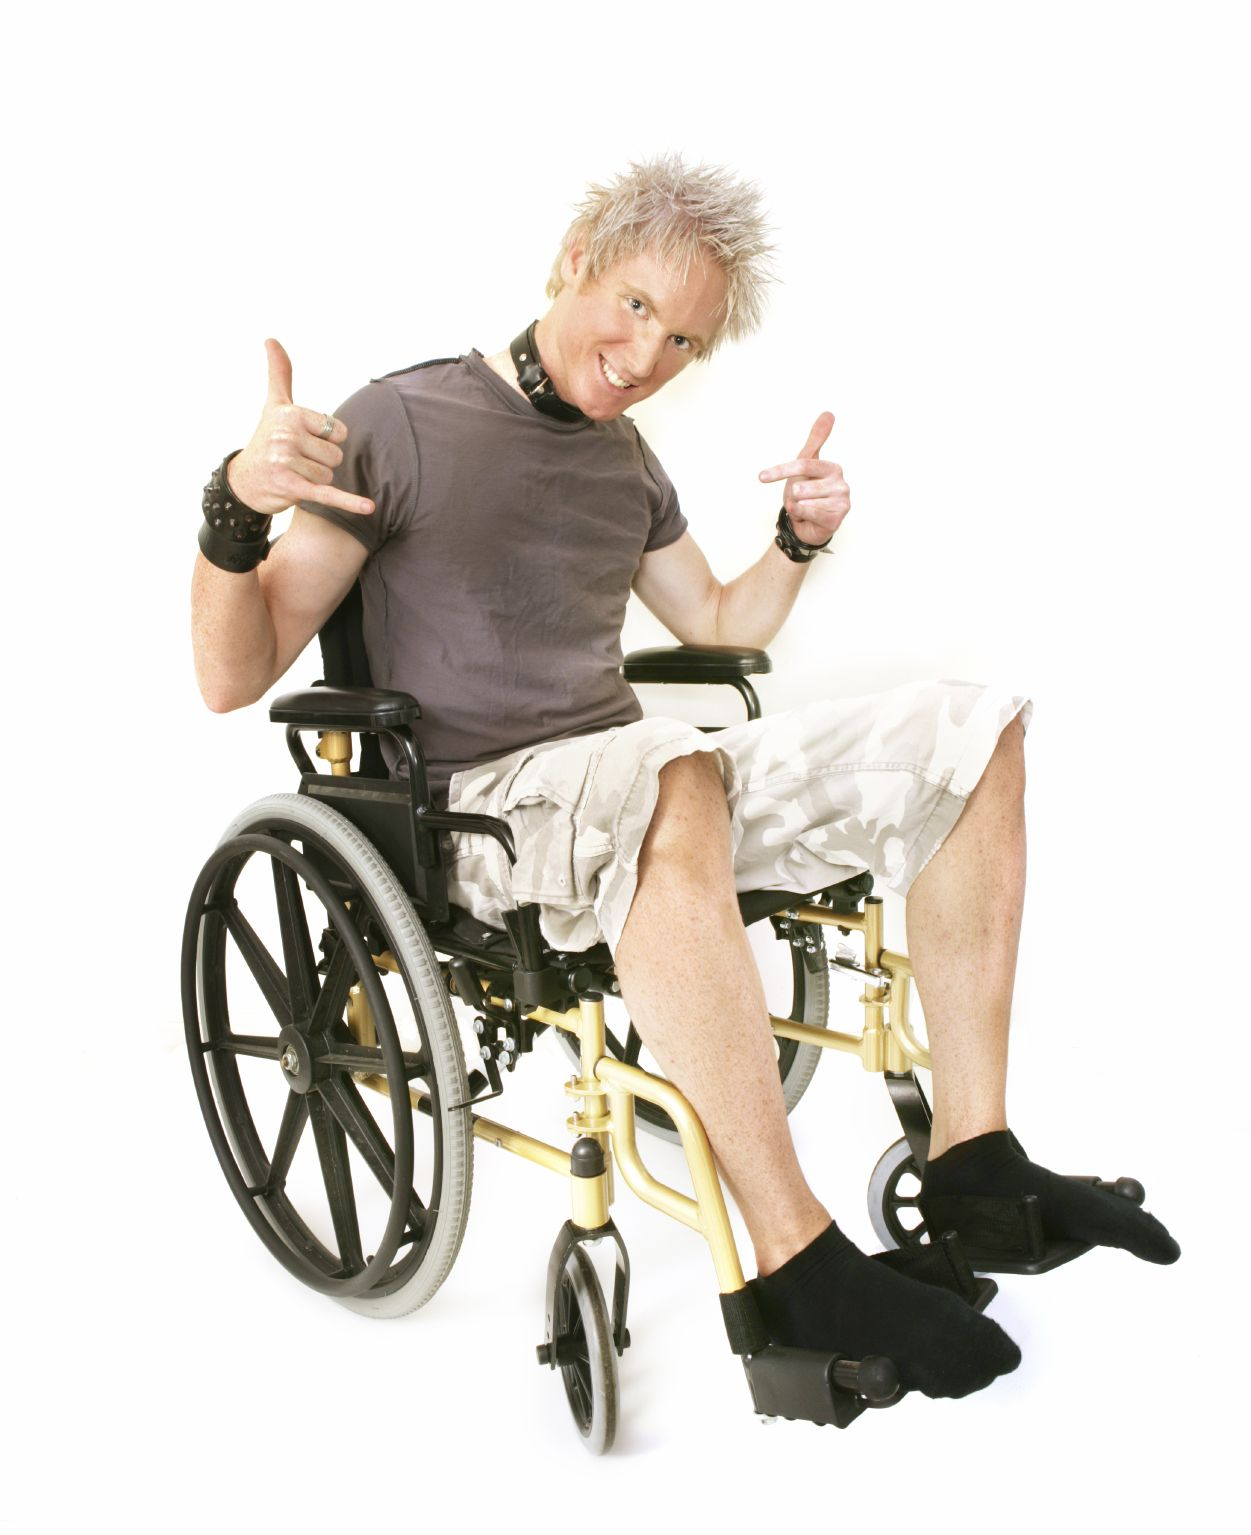 Person In Wheelchair Images Galleries